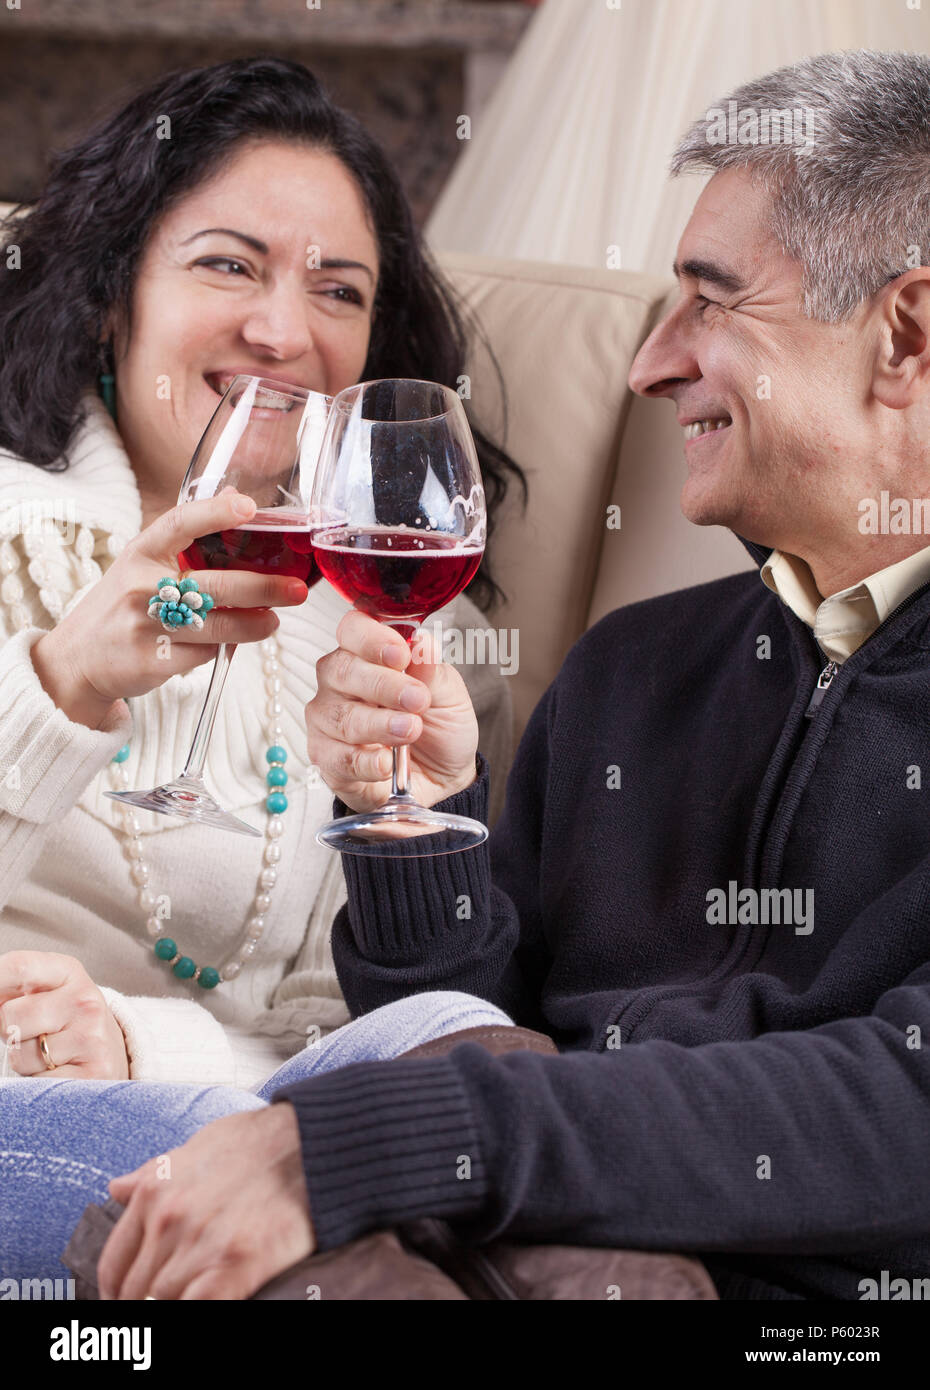 Middle aged Caucasian heterosexual couple relaxed, drinking red wine. - Stock Image